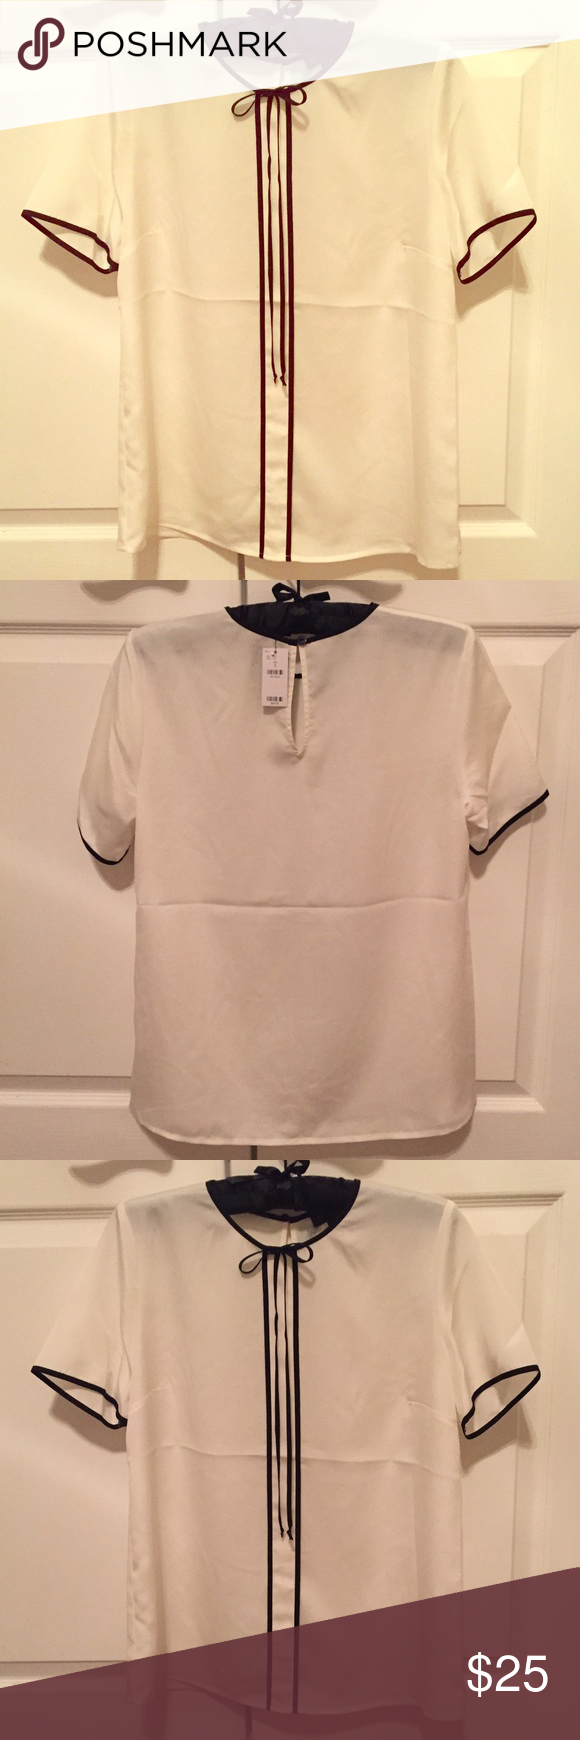 *NWT* The Limited blouse Brand new with tags! White with a pearl-like sheen, black trim & bow 🔲 don't be afraid to make an offer or comment with any questions! The Limited Tops Blouses